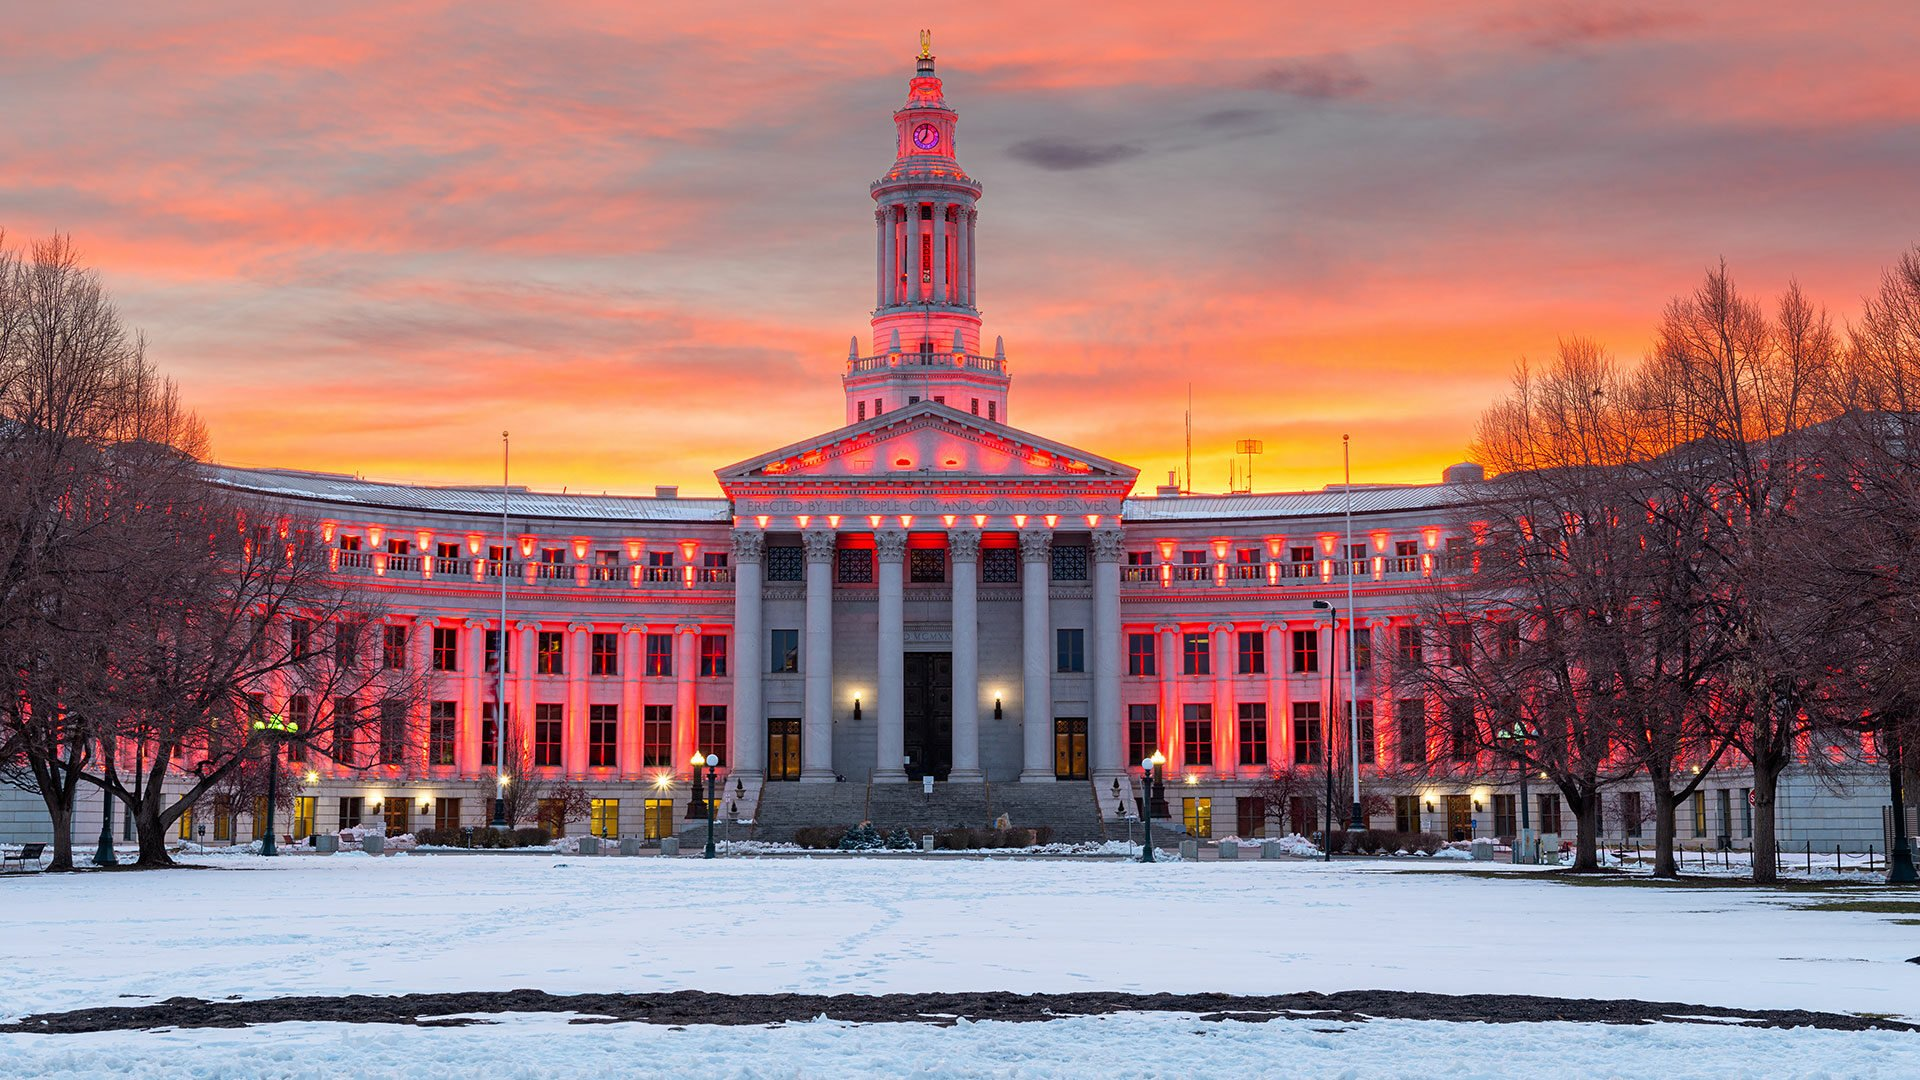 City and County of Denver building lit up red with sunset in background